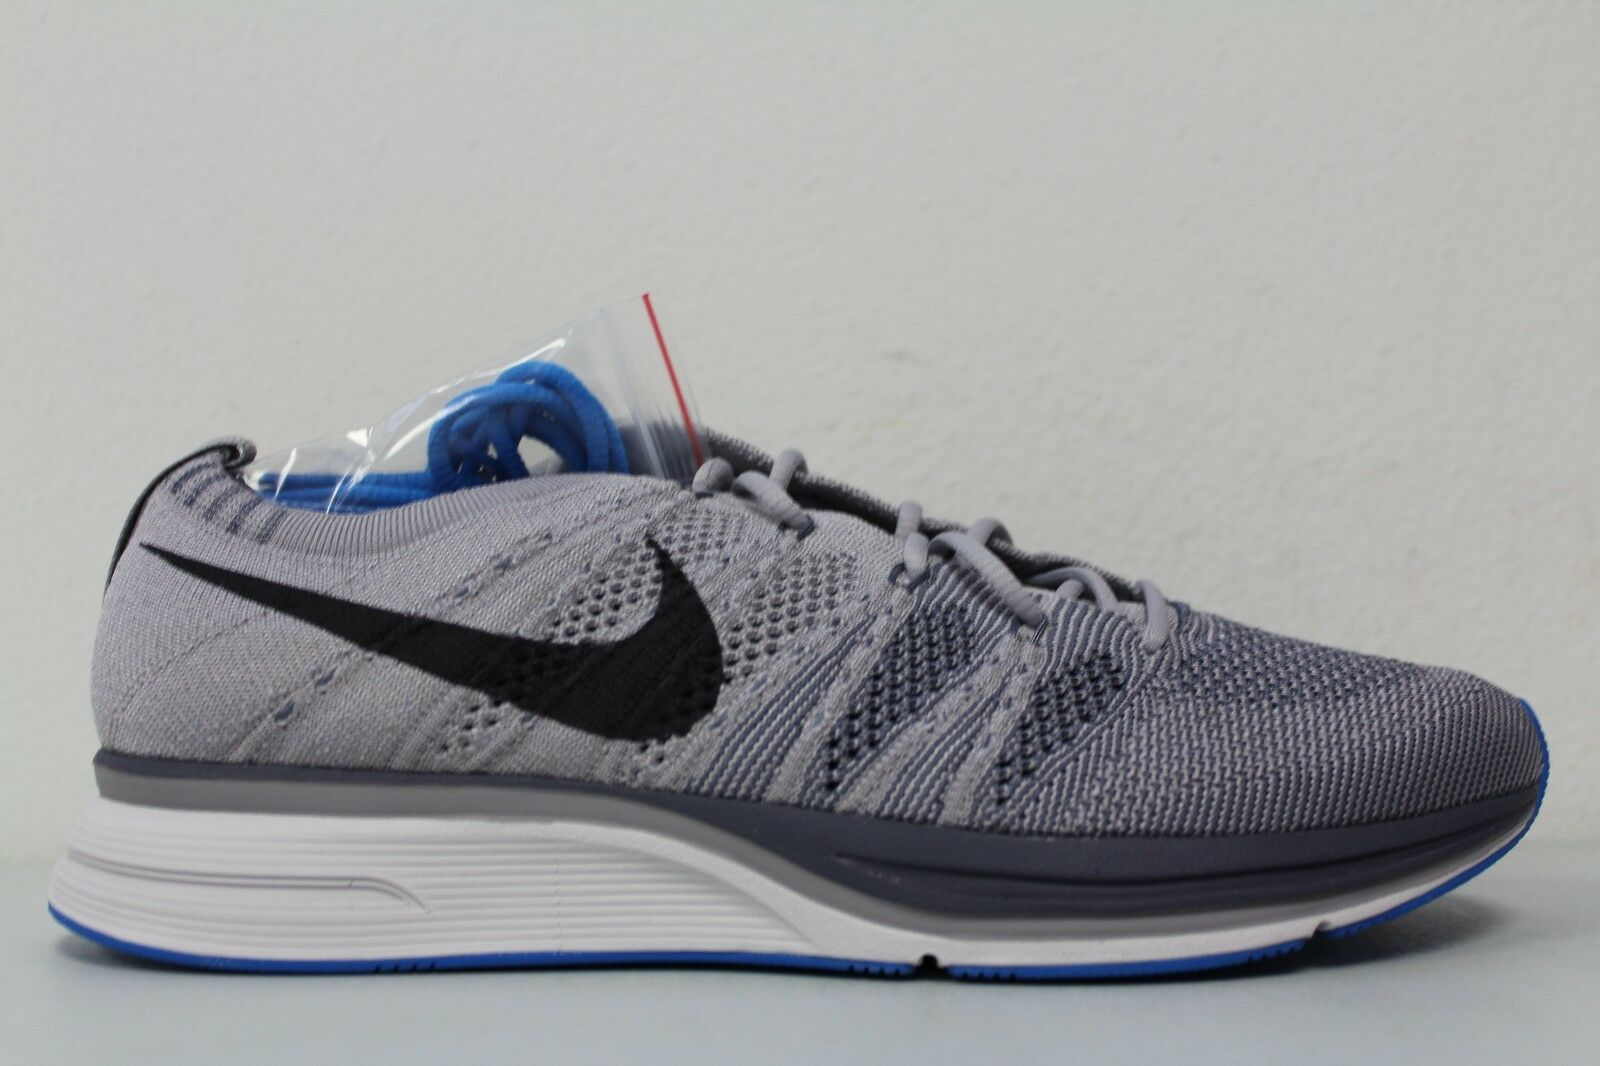 Men's Nike Flyknit Trainer Atmosphere Grey Thunder Grey AH8396-006 Size 8